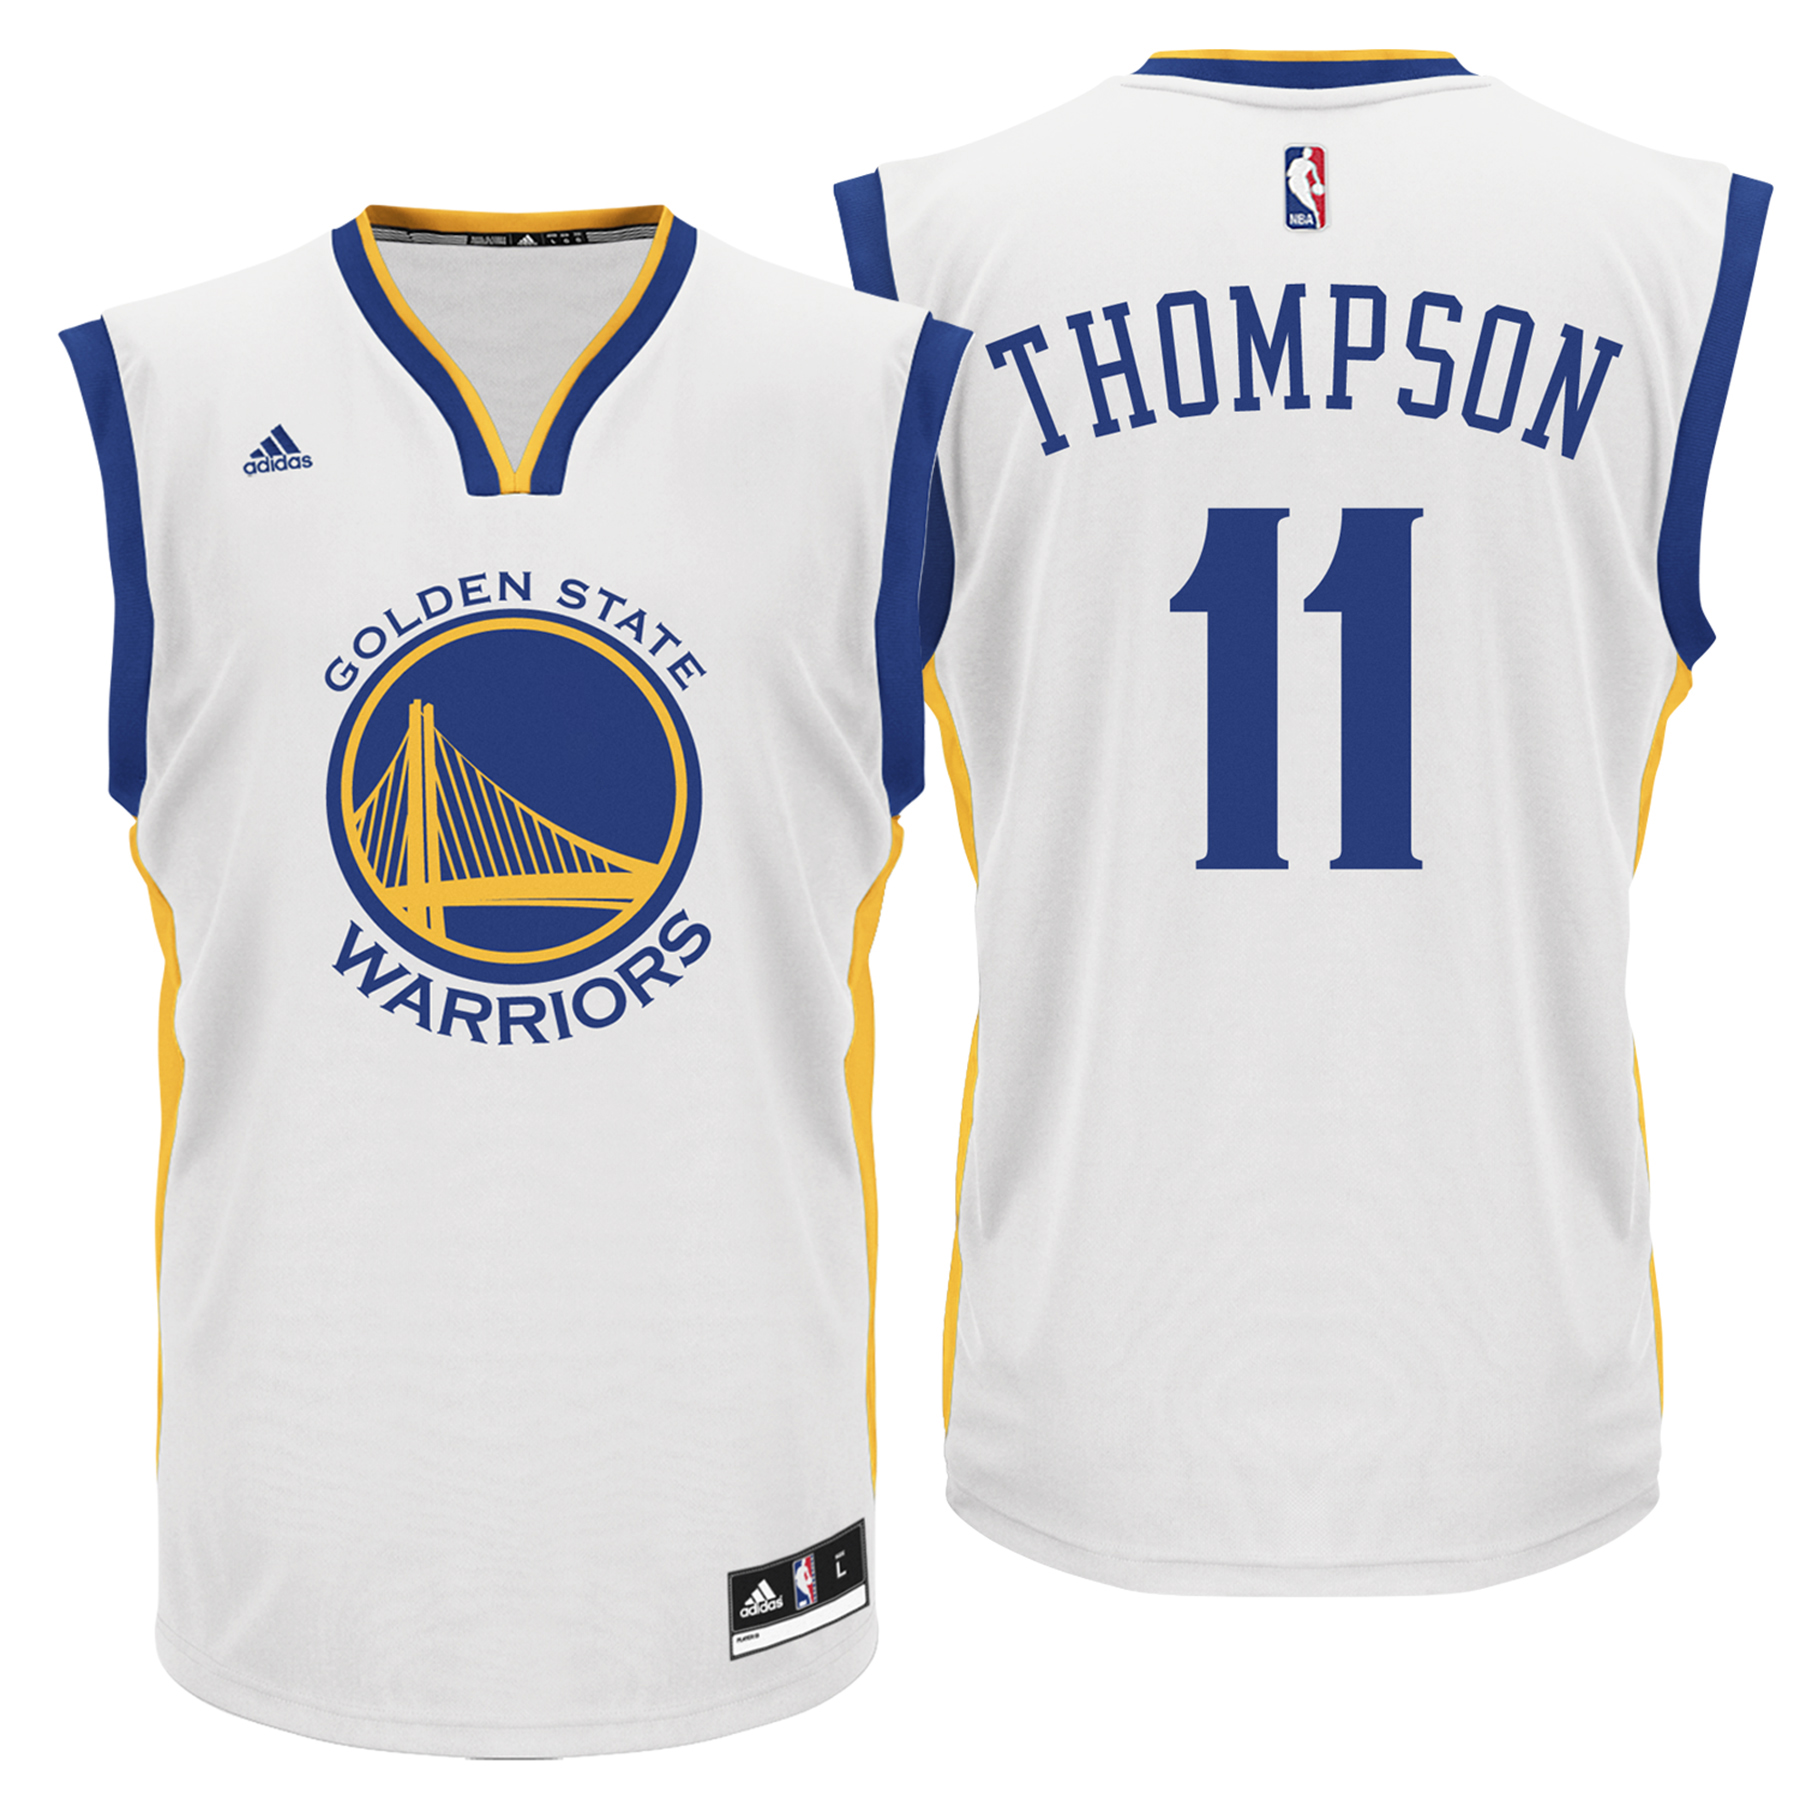 Golden State Warriors Home Replica Jersey - Klay Thompson - Mens